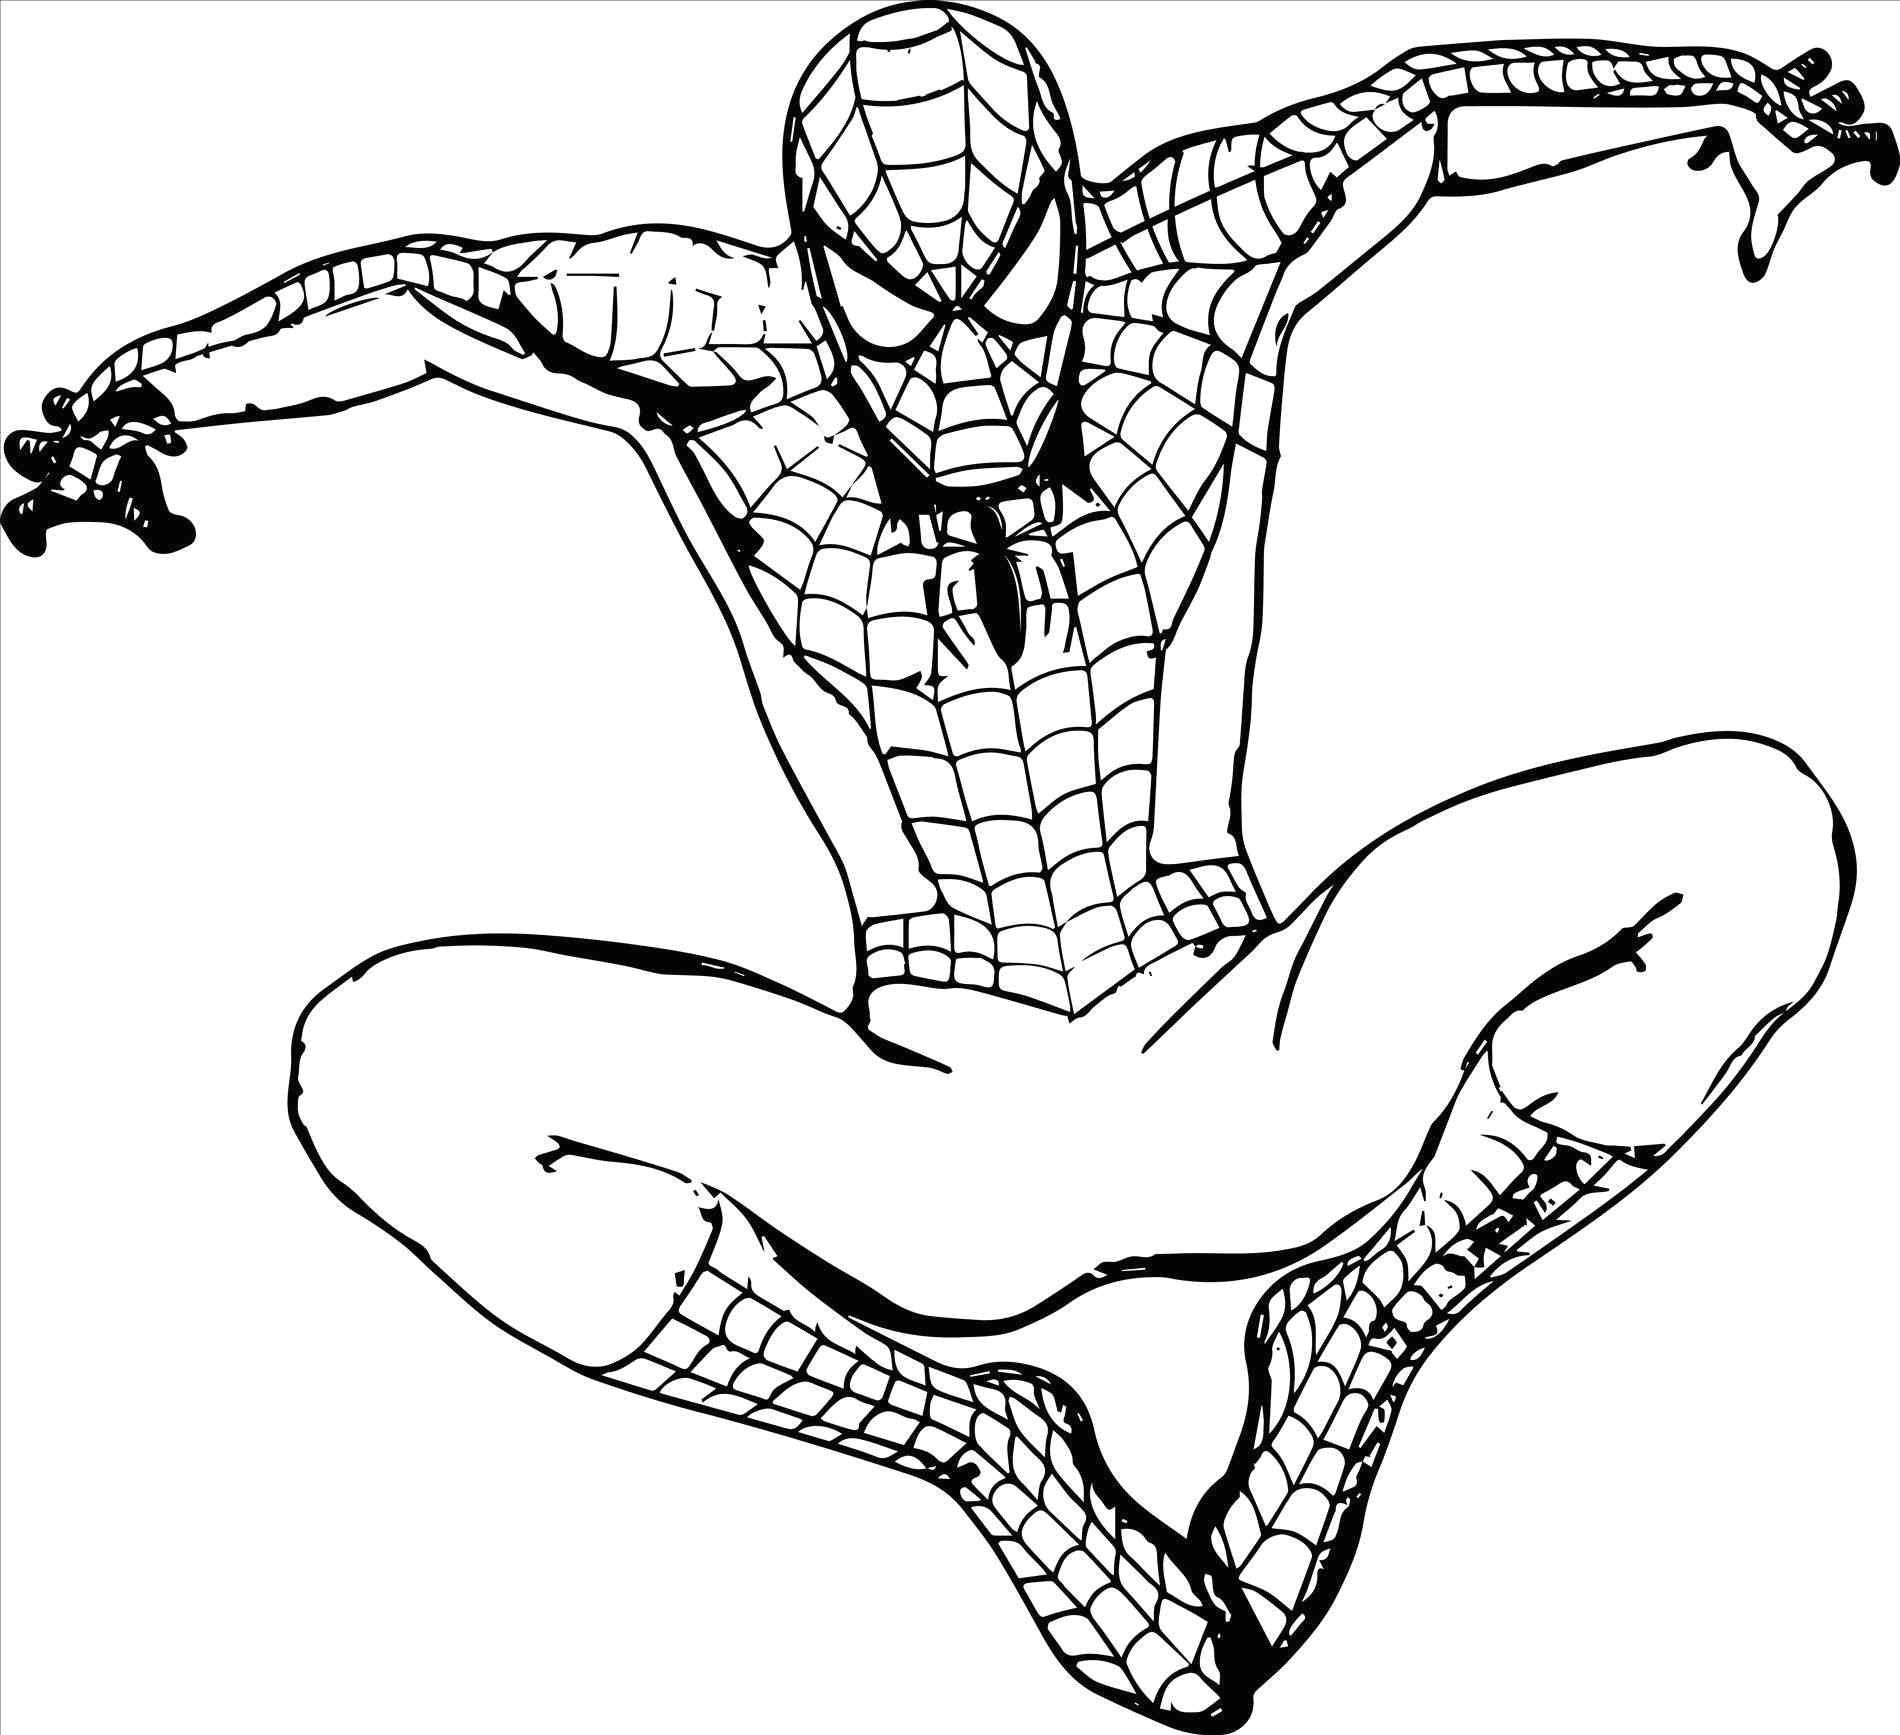 Drawing Cute Superheroes Superheroes Easy to Draw Spiderman Coloring Pages Luxury 0 0d